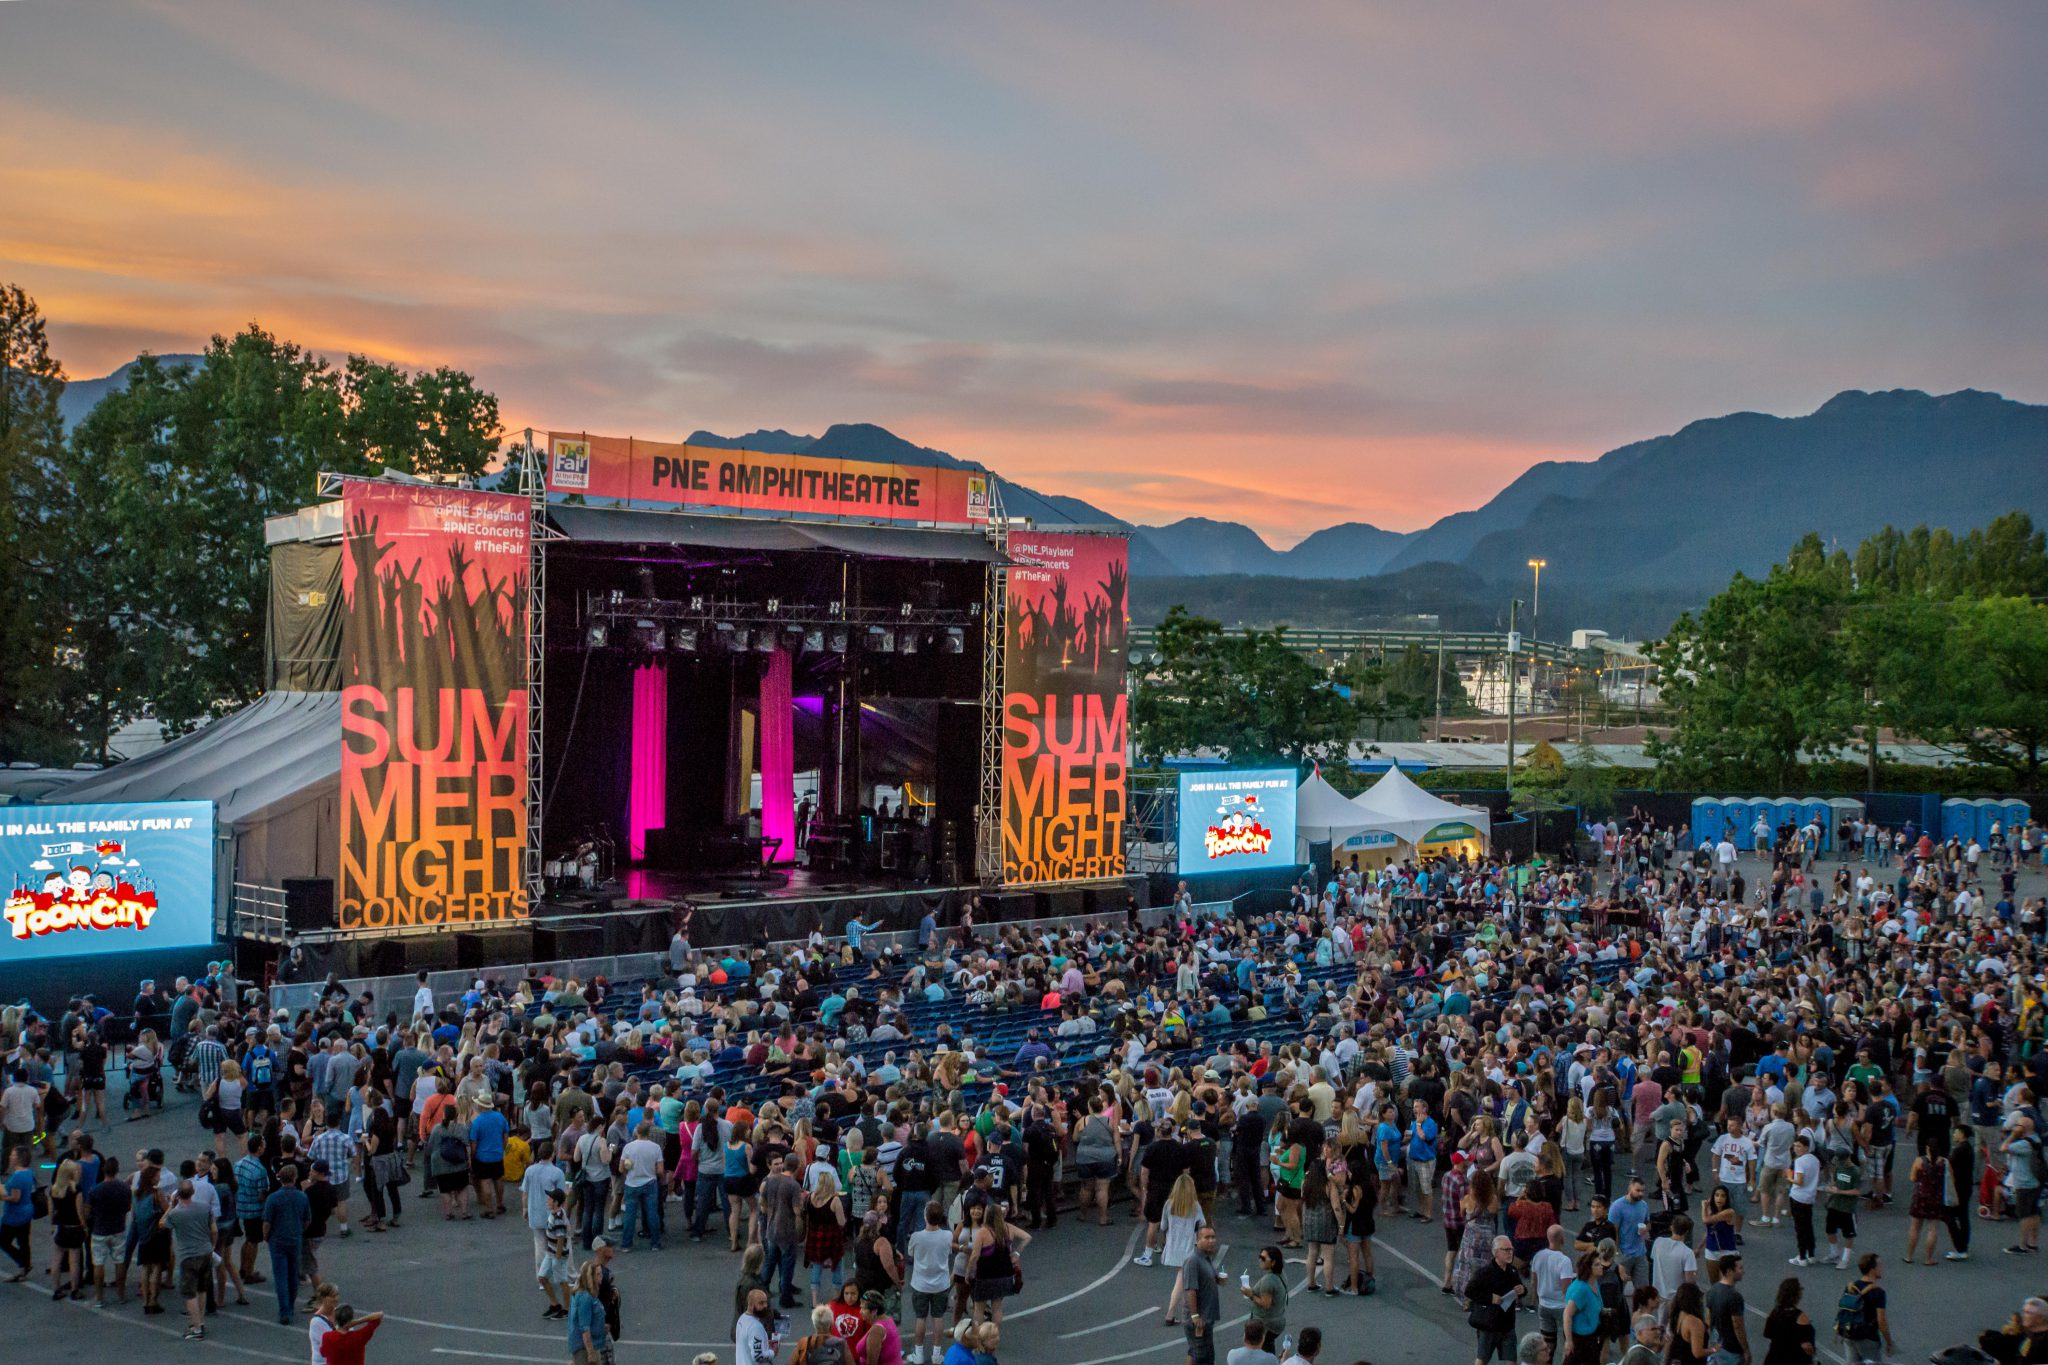 THE FAIR AT THE PNE UNVEILS 2017 LINE UP